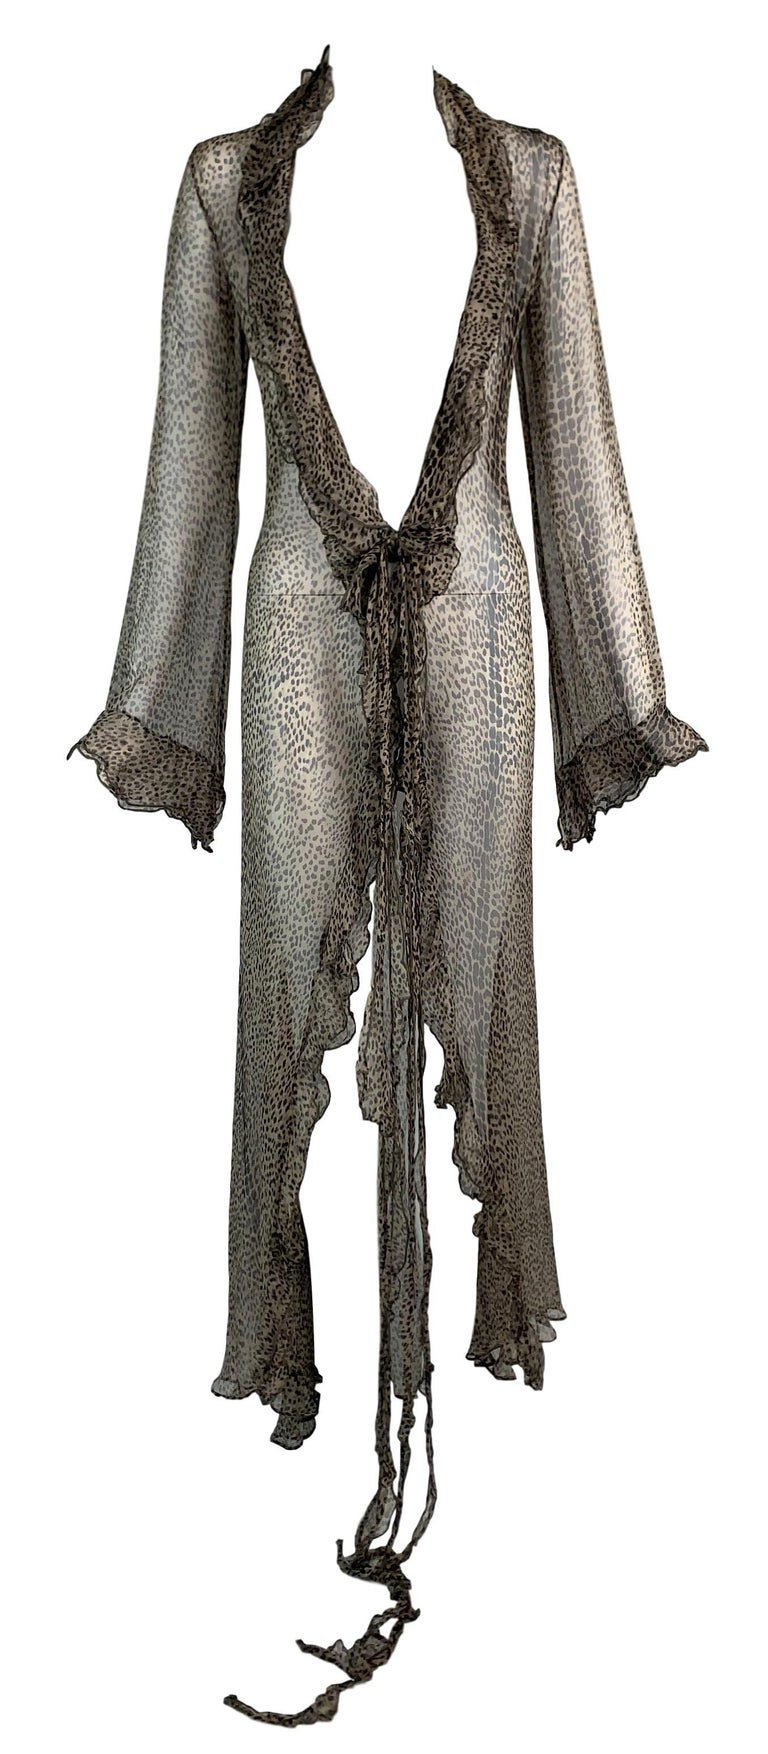 DESIGNER: S/S 2002 Roberto Cavalli Runway- was shown on the runway in a different animal print  Please contact for more information and/or photos.  CONDITION: Good- no flaws  MATERIAL: Silk  COUNTRY MADE: Italy  SIZE: 44  MEASUREMENTS; provided as a